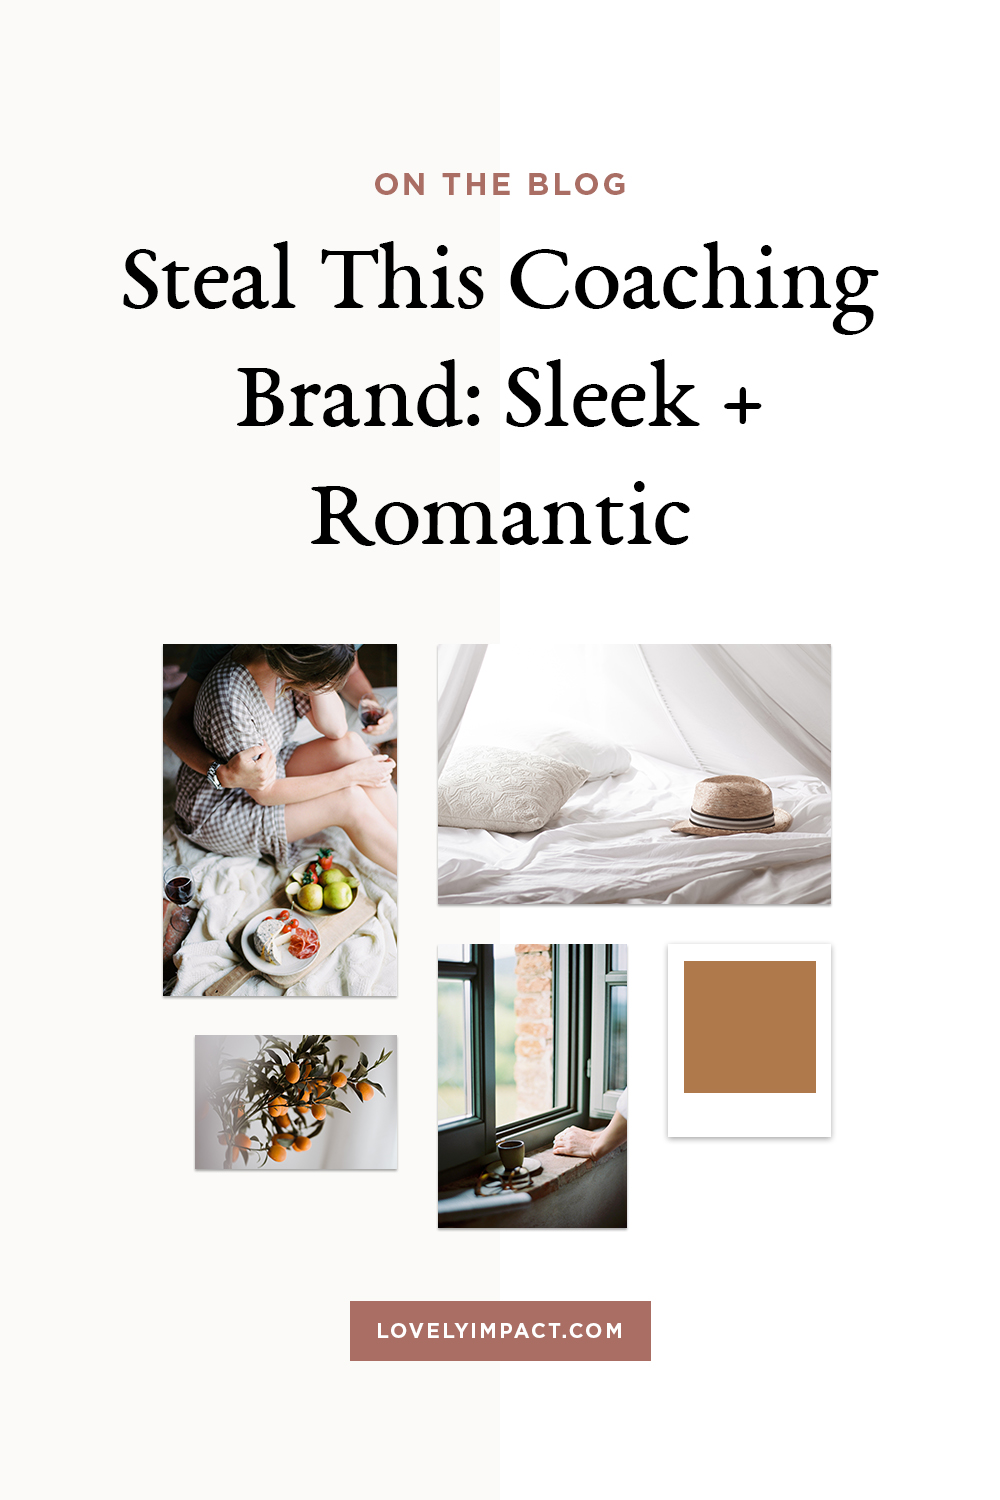 Steal This Coaching Brand: Sleek + Romantic